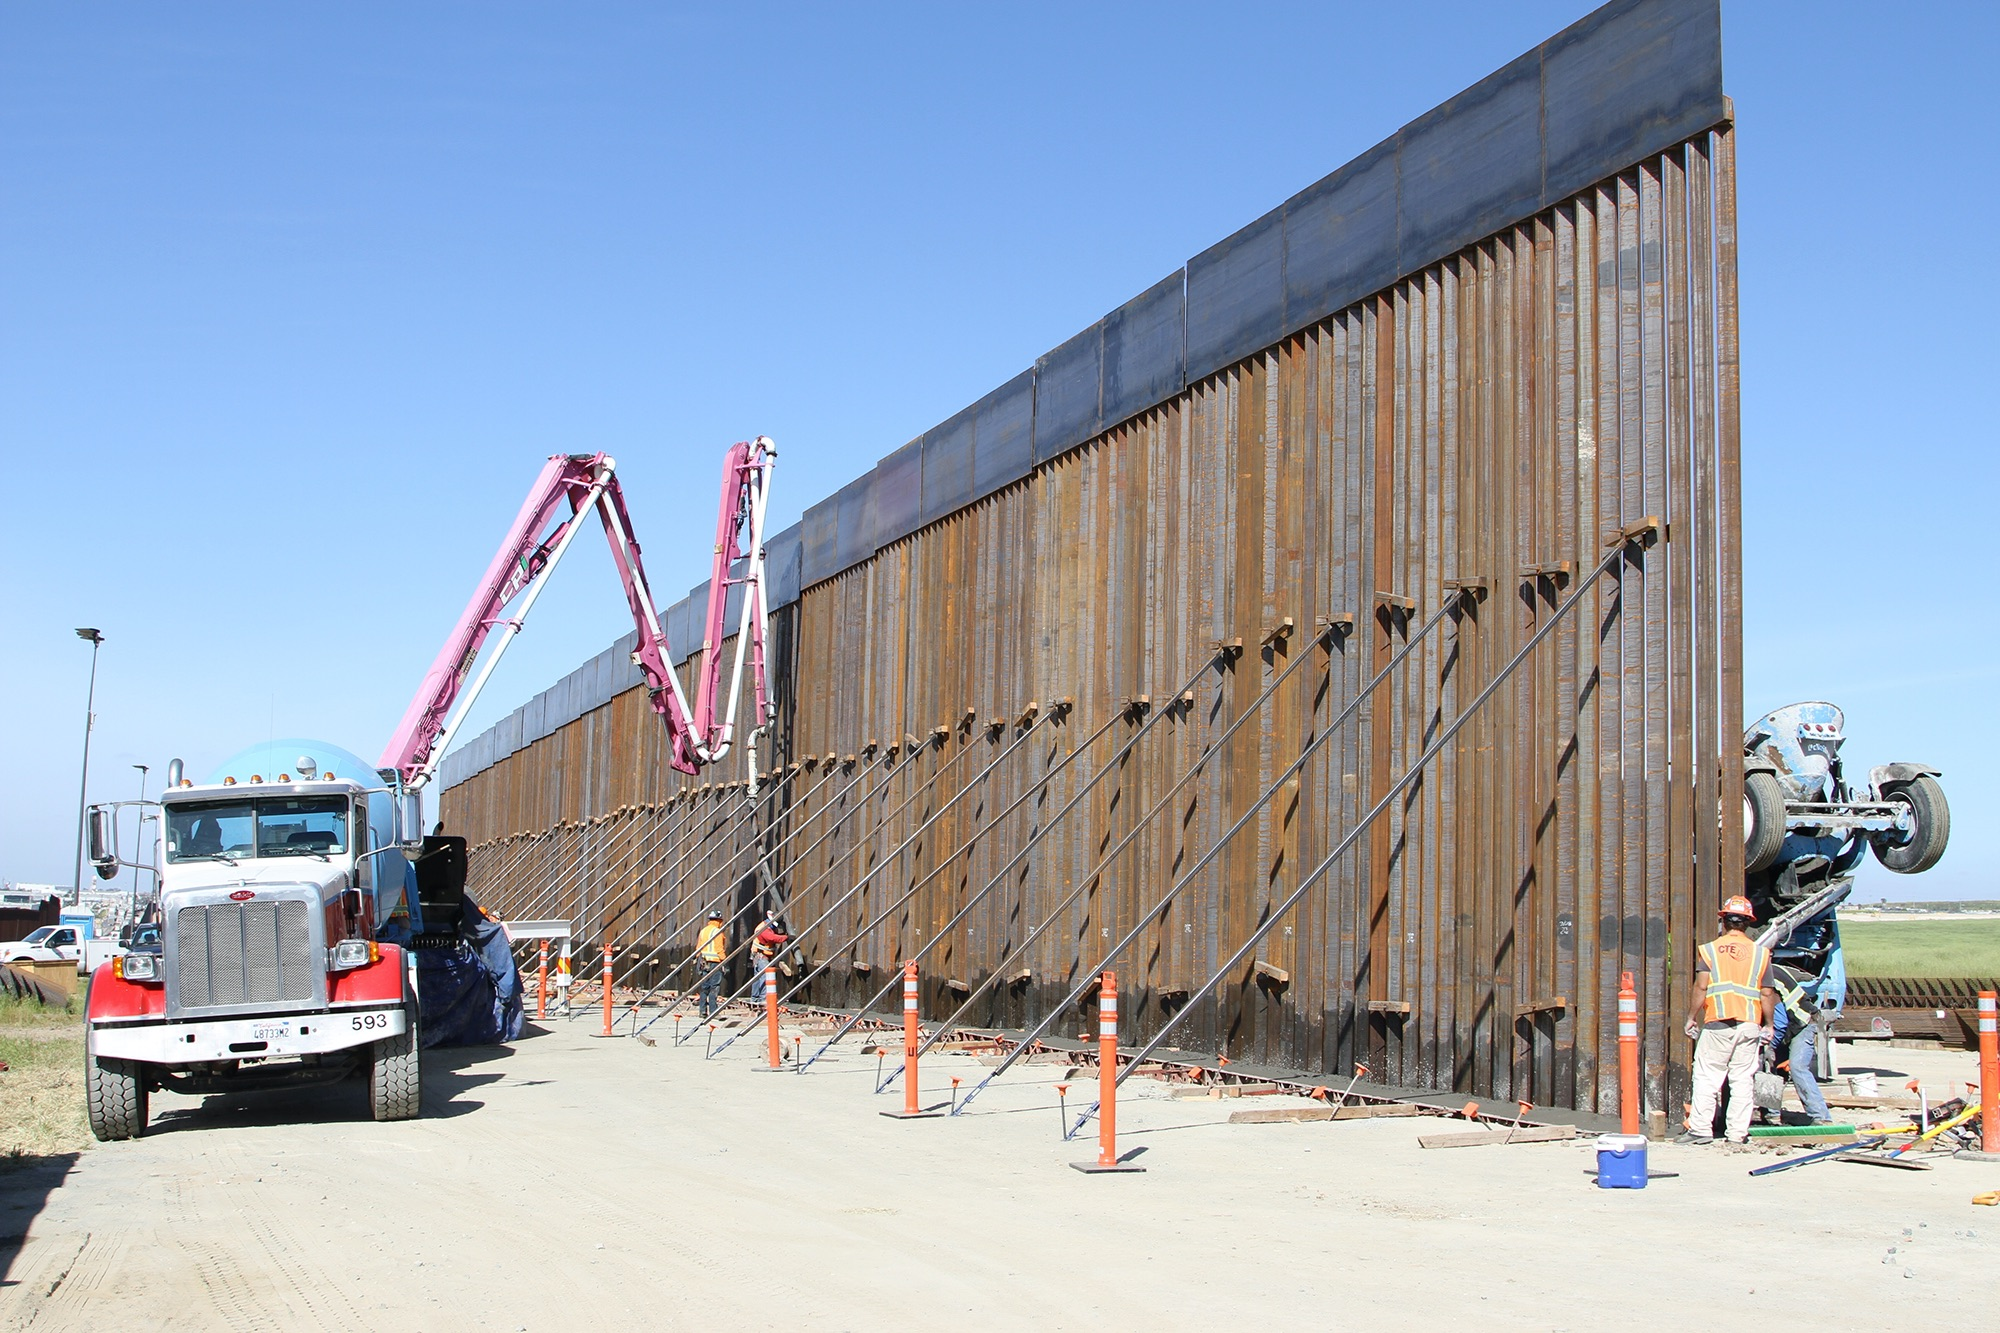 DHS waives more regulations to speed construction of border wall